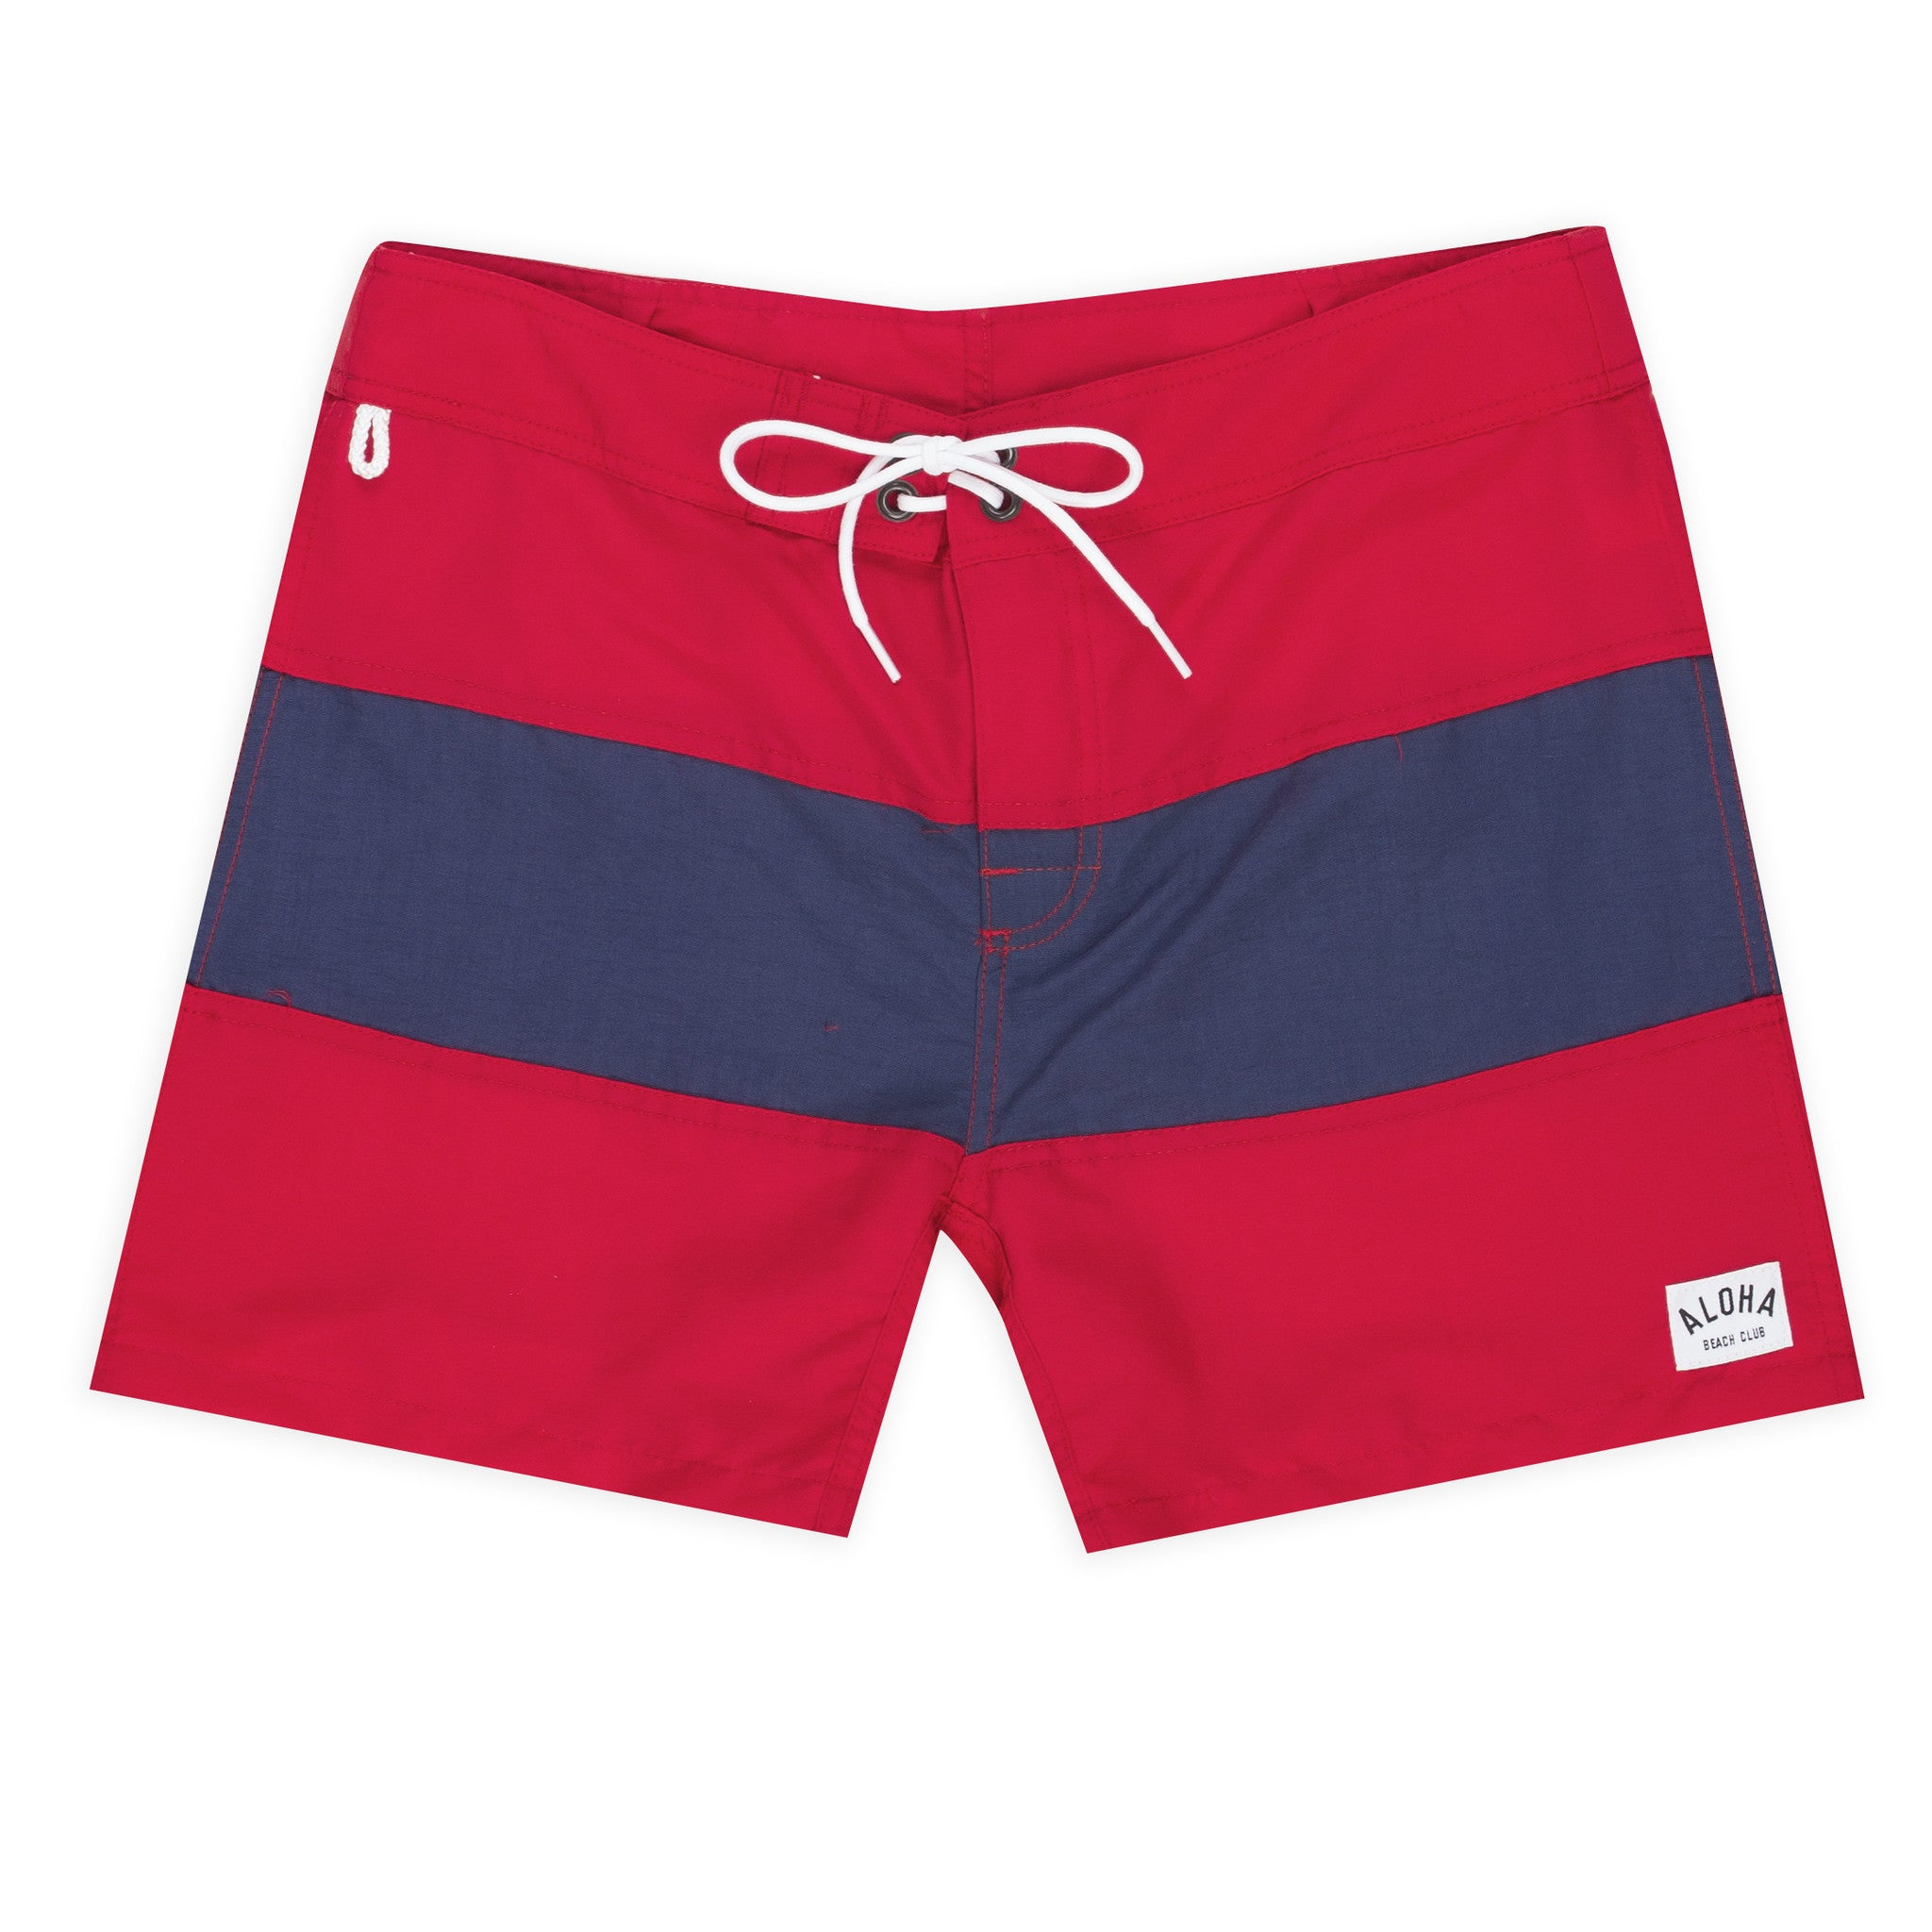 Aloha Beach Club - Tucker Trunk in Red and Navy - Aloha Beach Club